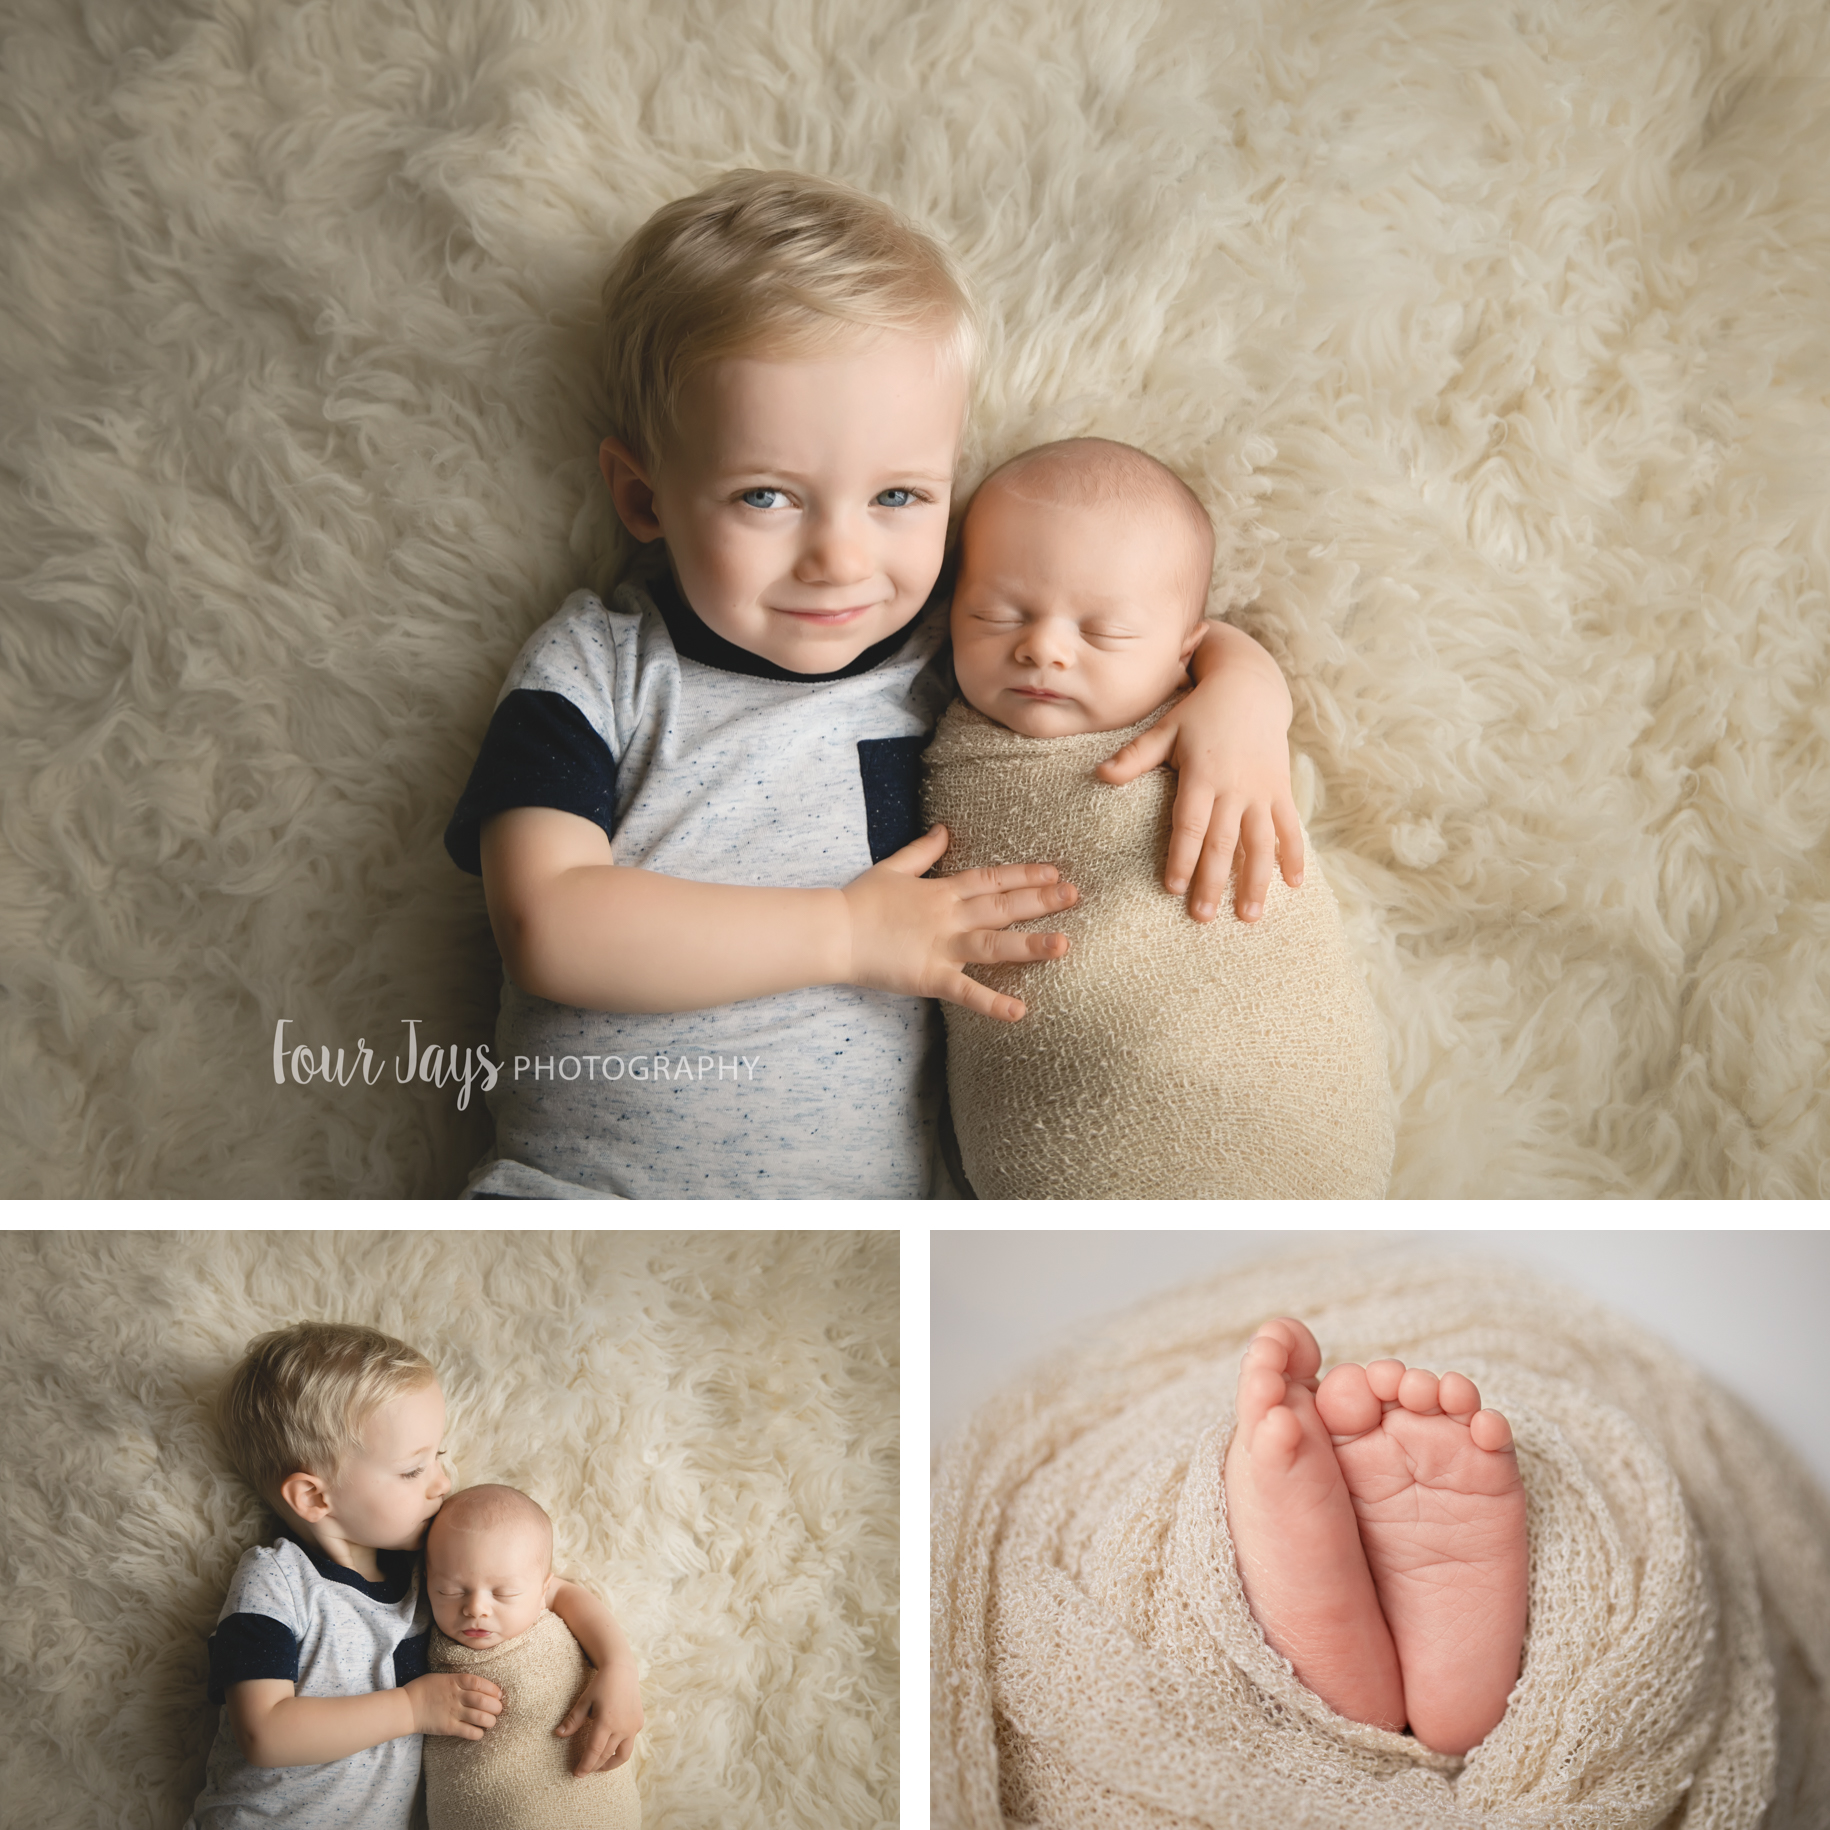 Best newborn in home sibling photographers oregon city.jpg